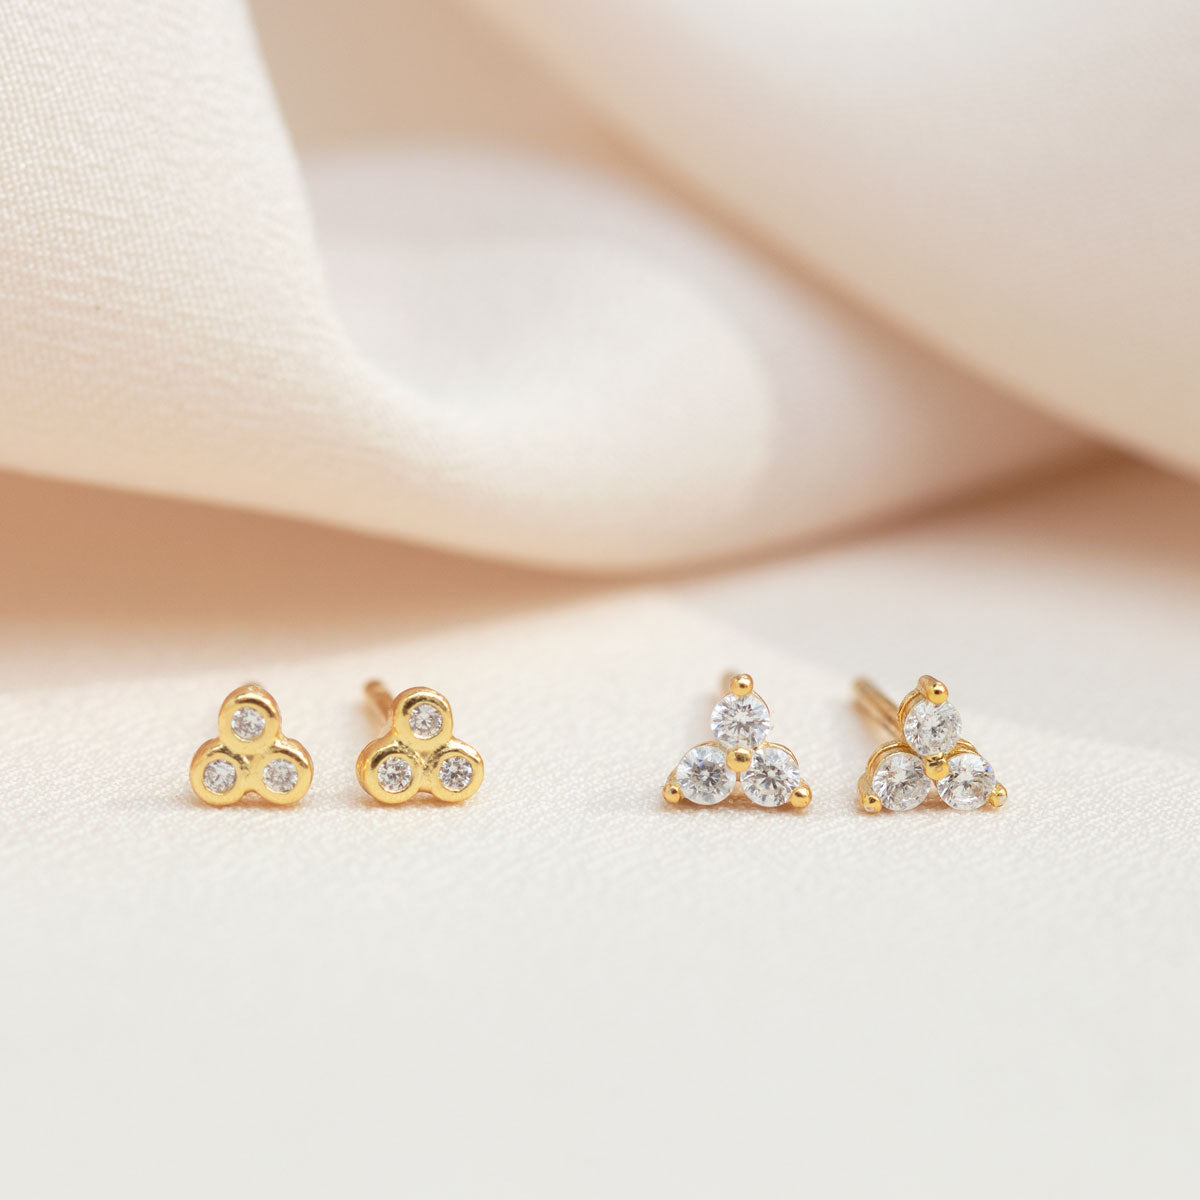 Tiny Clover Stud Earrings